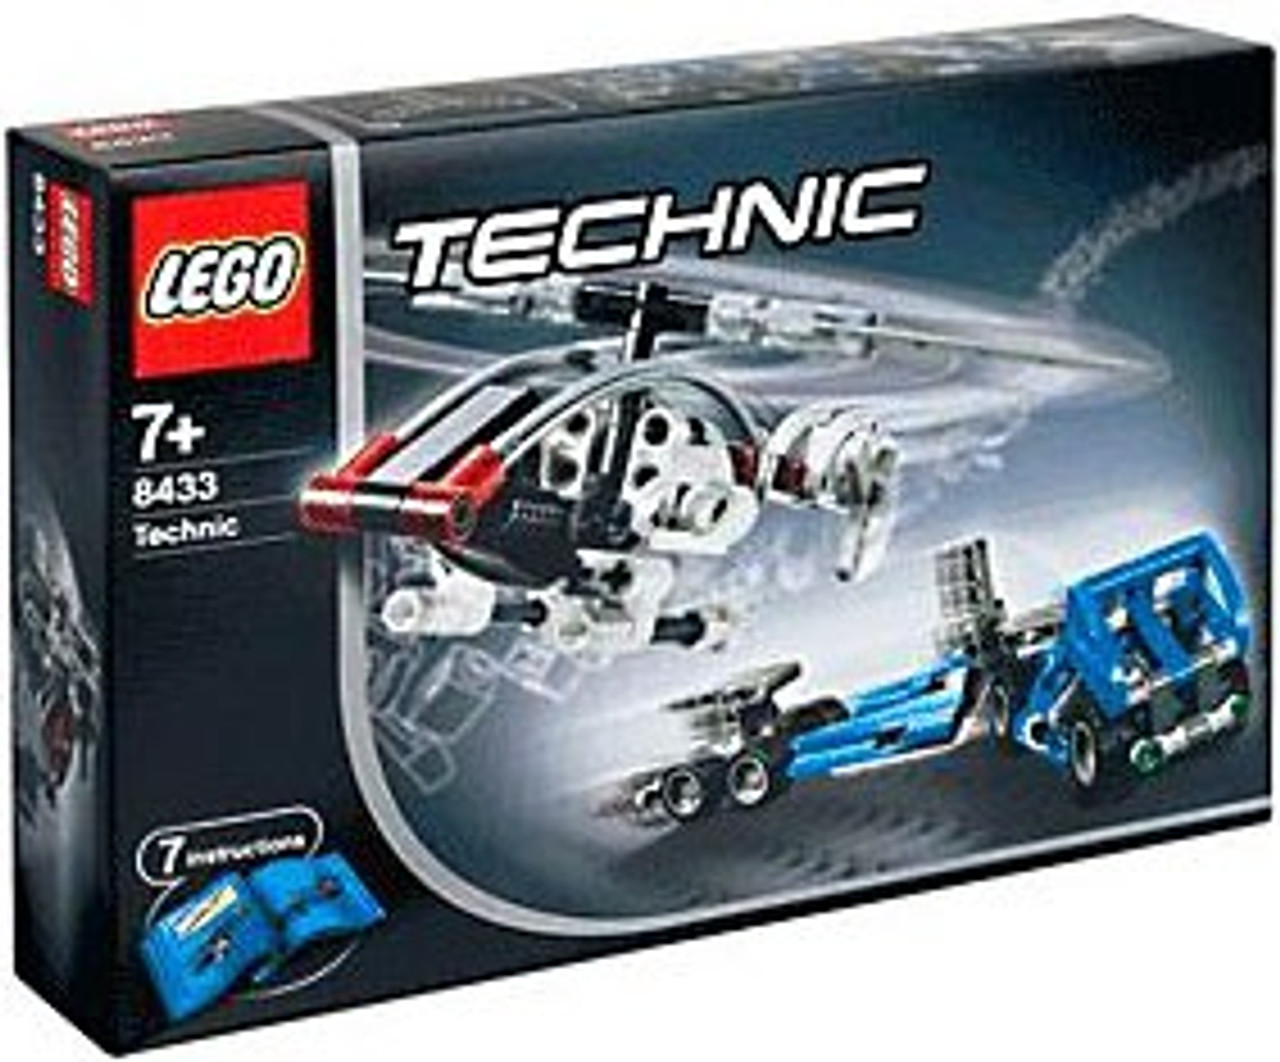 LEGO Technic Cool Movers Set #8433